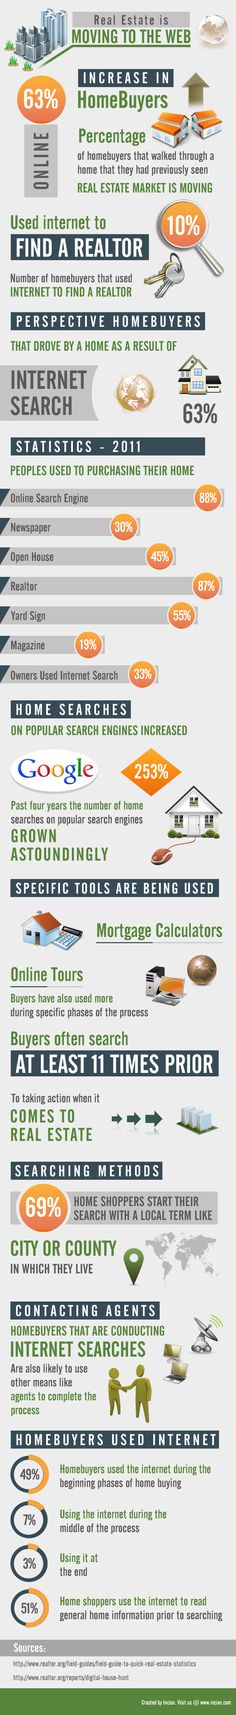 Percentage of home buyers using internet for research has increased significantly in the recent days via visual.ly.